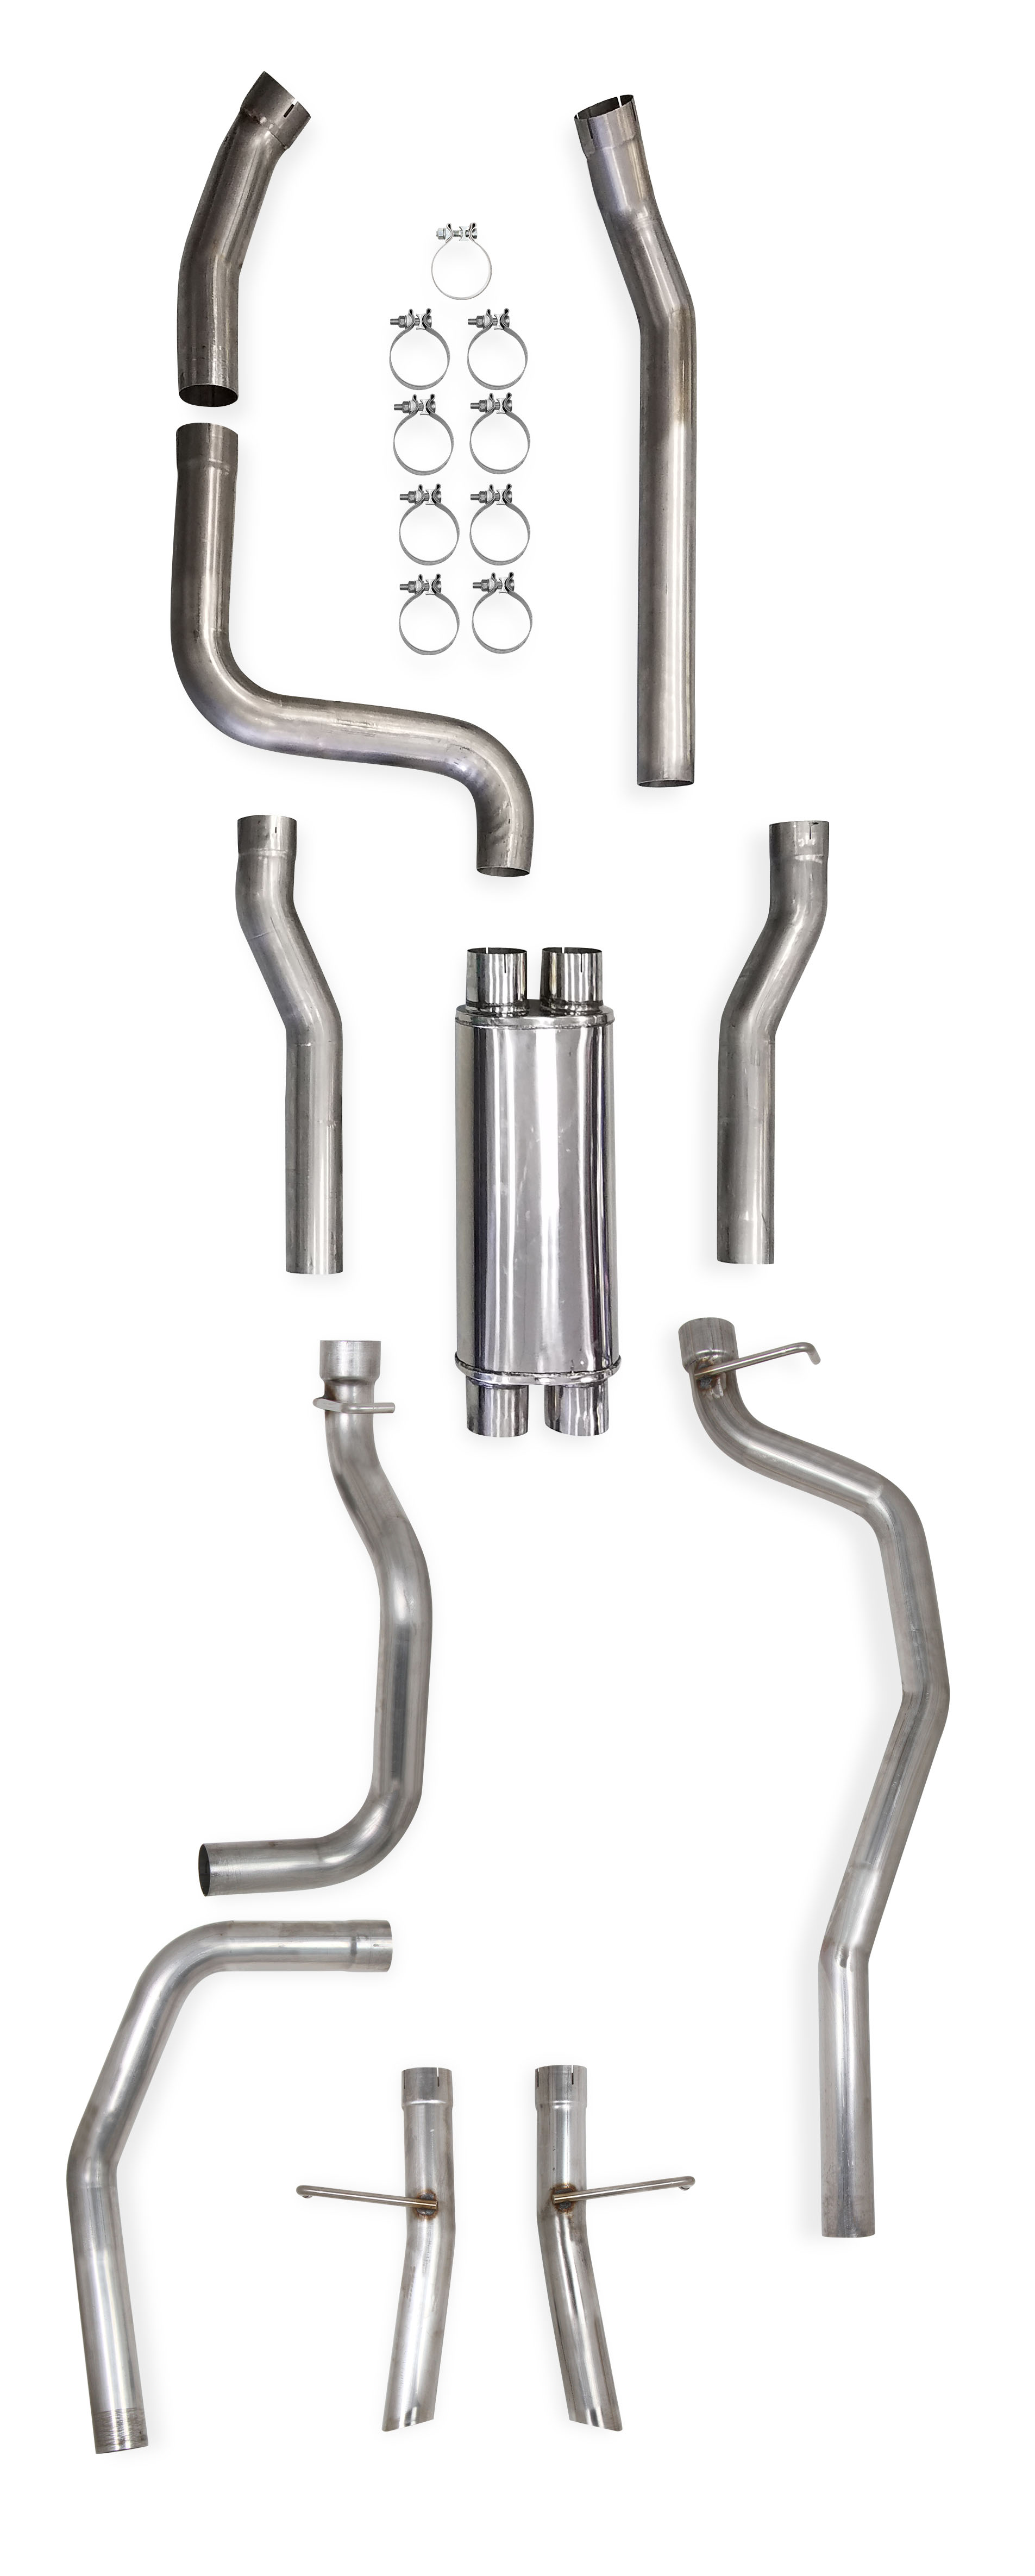 04 Gm S 10 Sonoma 2wd Ls Swap Exhaust System Dual 3